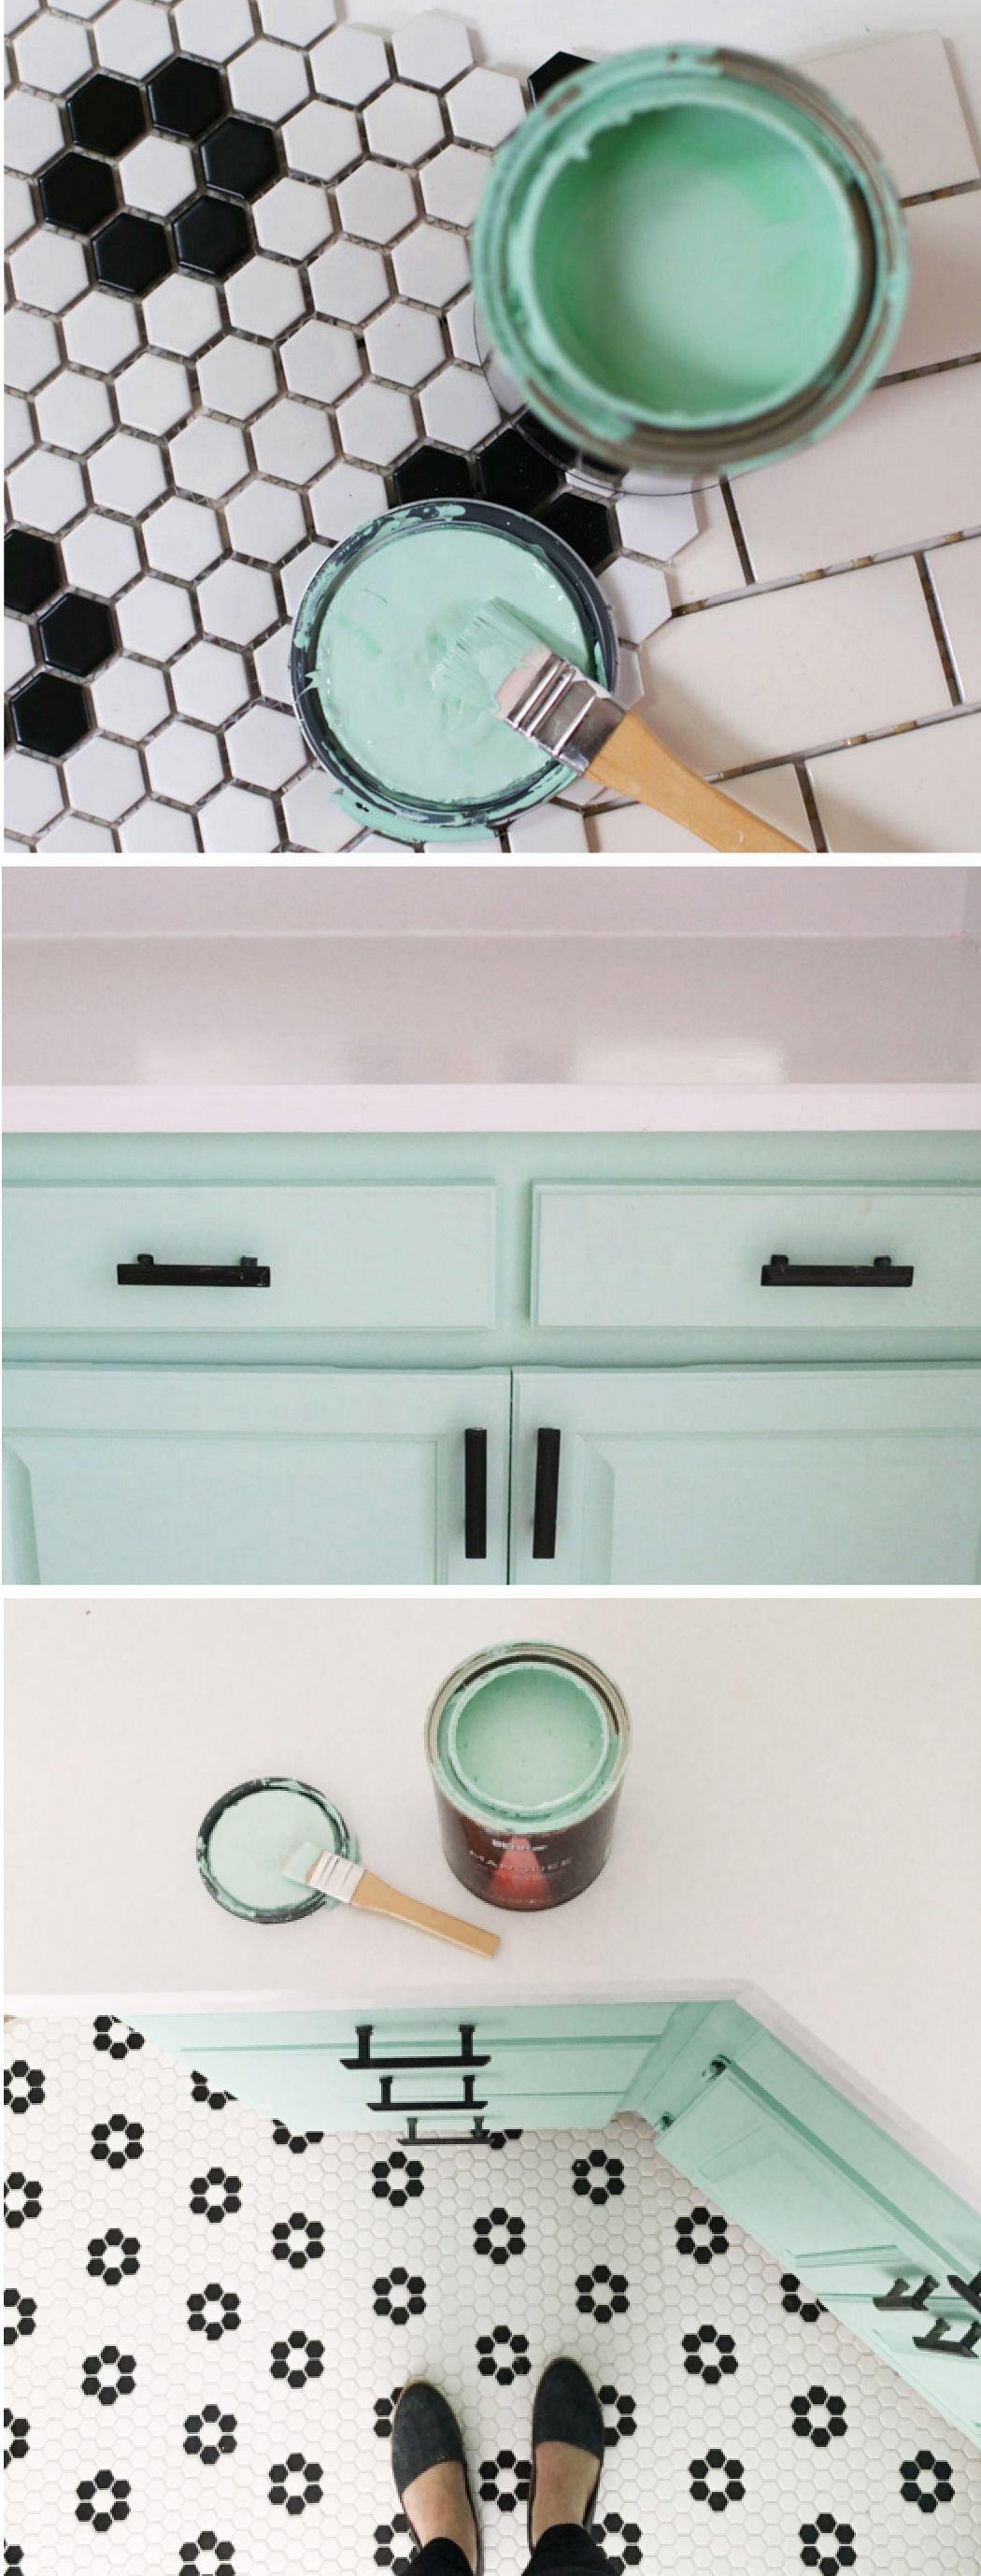 How to tile your bathroom floor / phase two | Retro vintage, Aqua ...